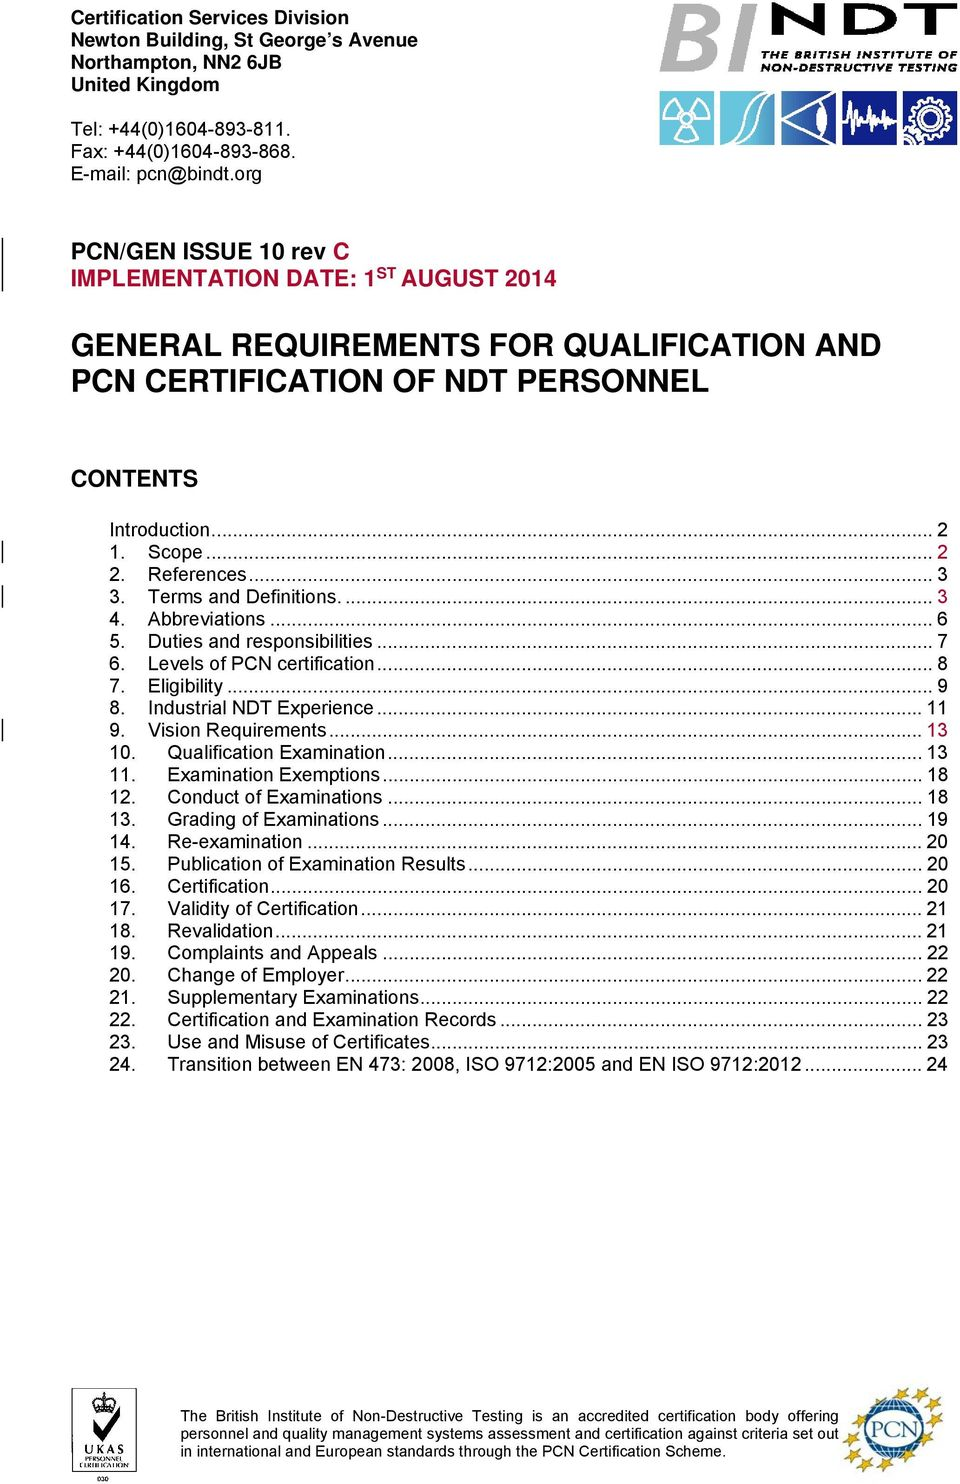 GENERAL REQUIREMENTS FOR QUALIFICATION AND PCN CERTIFICATION